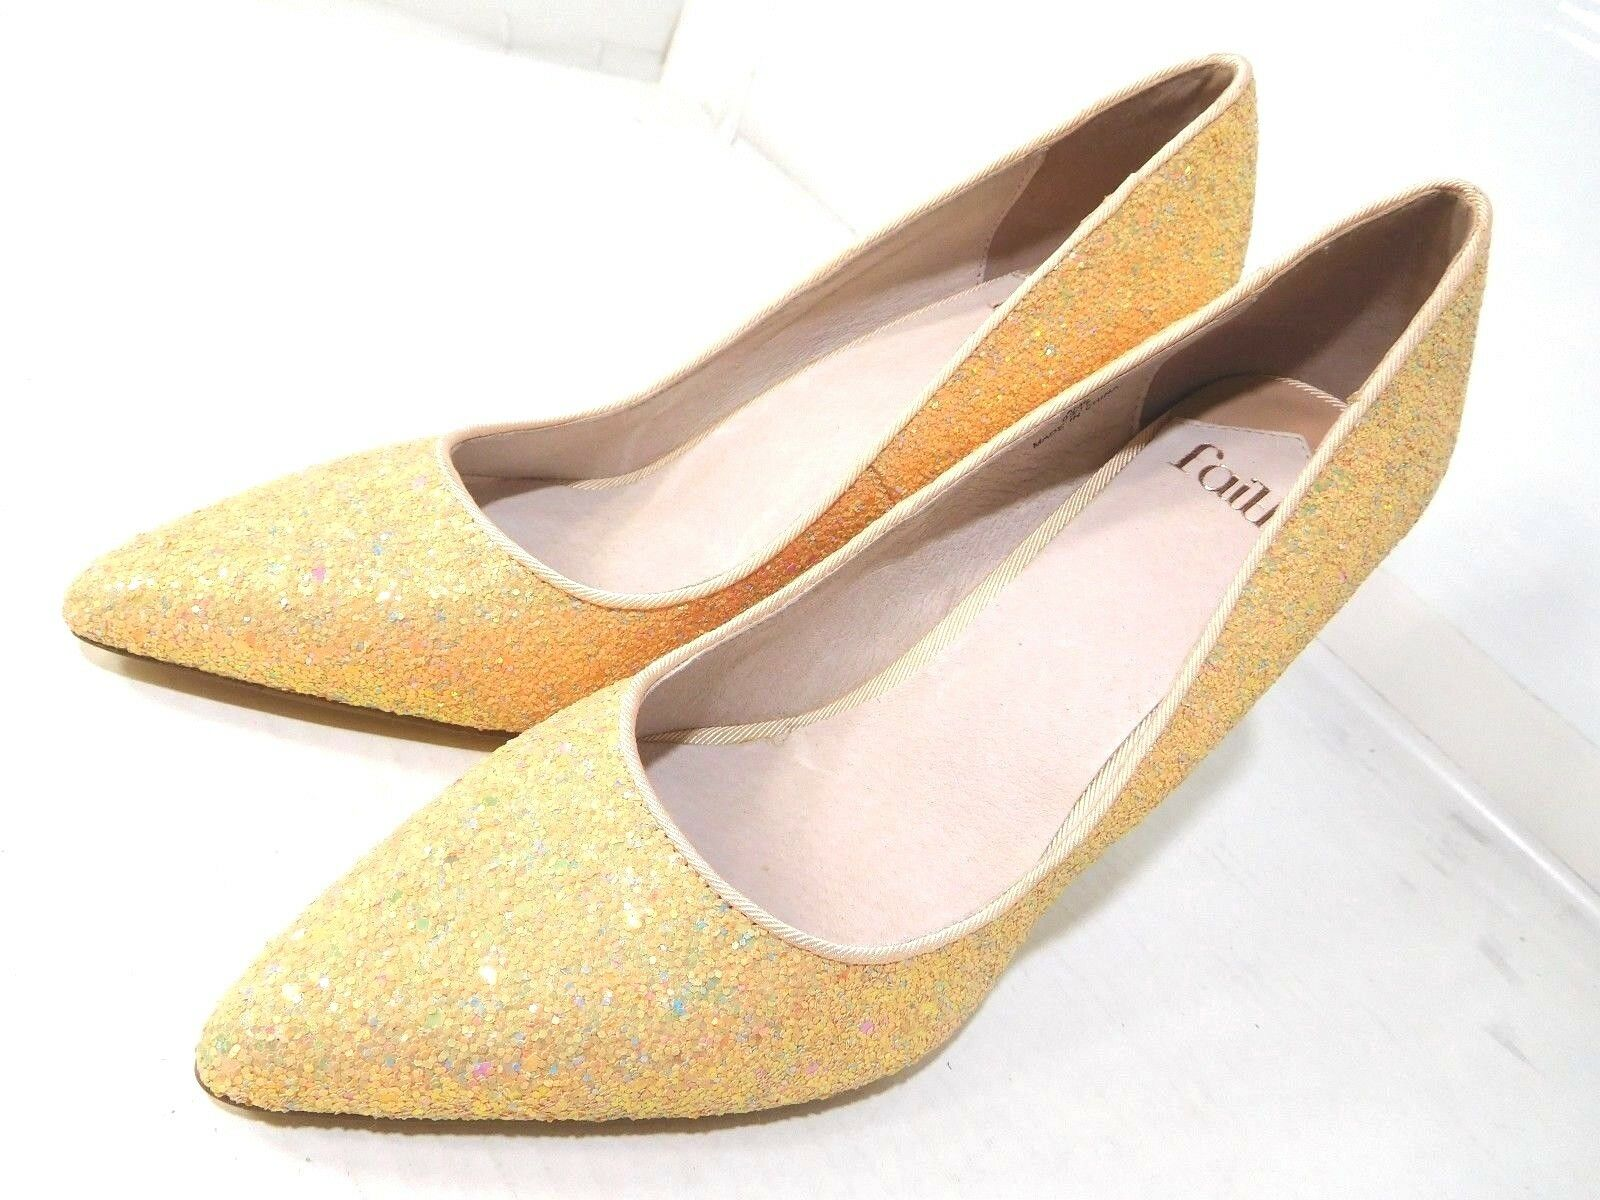 Faith Donna Fashion Shoes Pink 'Chloe Party' High Stiletto Heel Pointed Toe